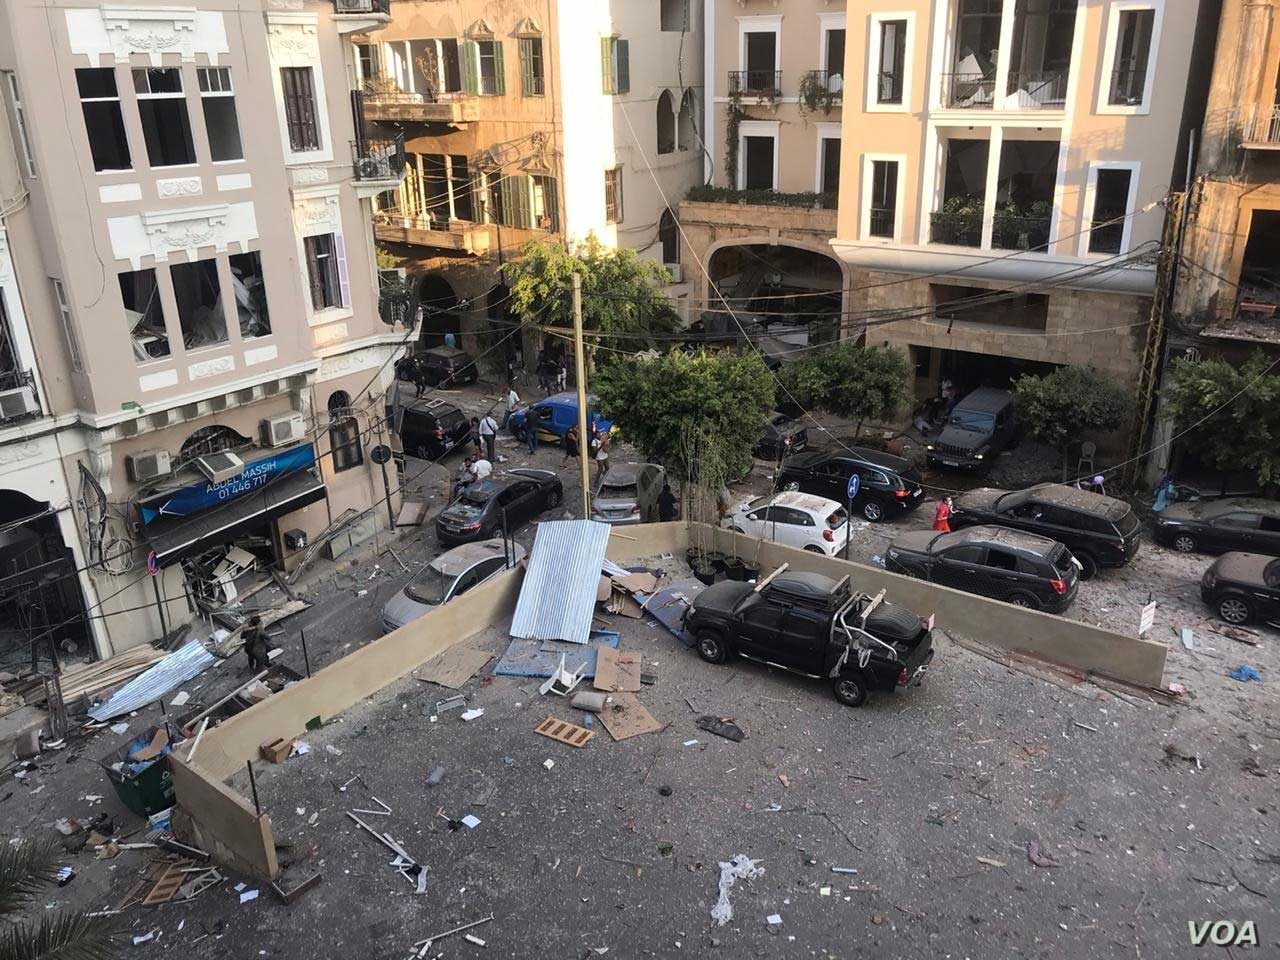 Damage in the aftermath of devastating explosion in Beirut, Lebanon